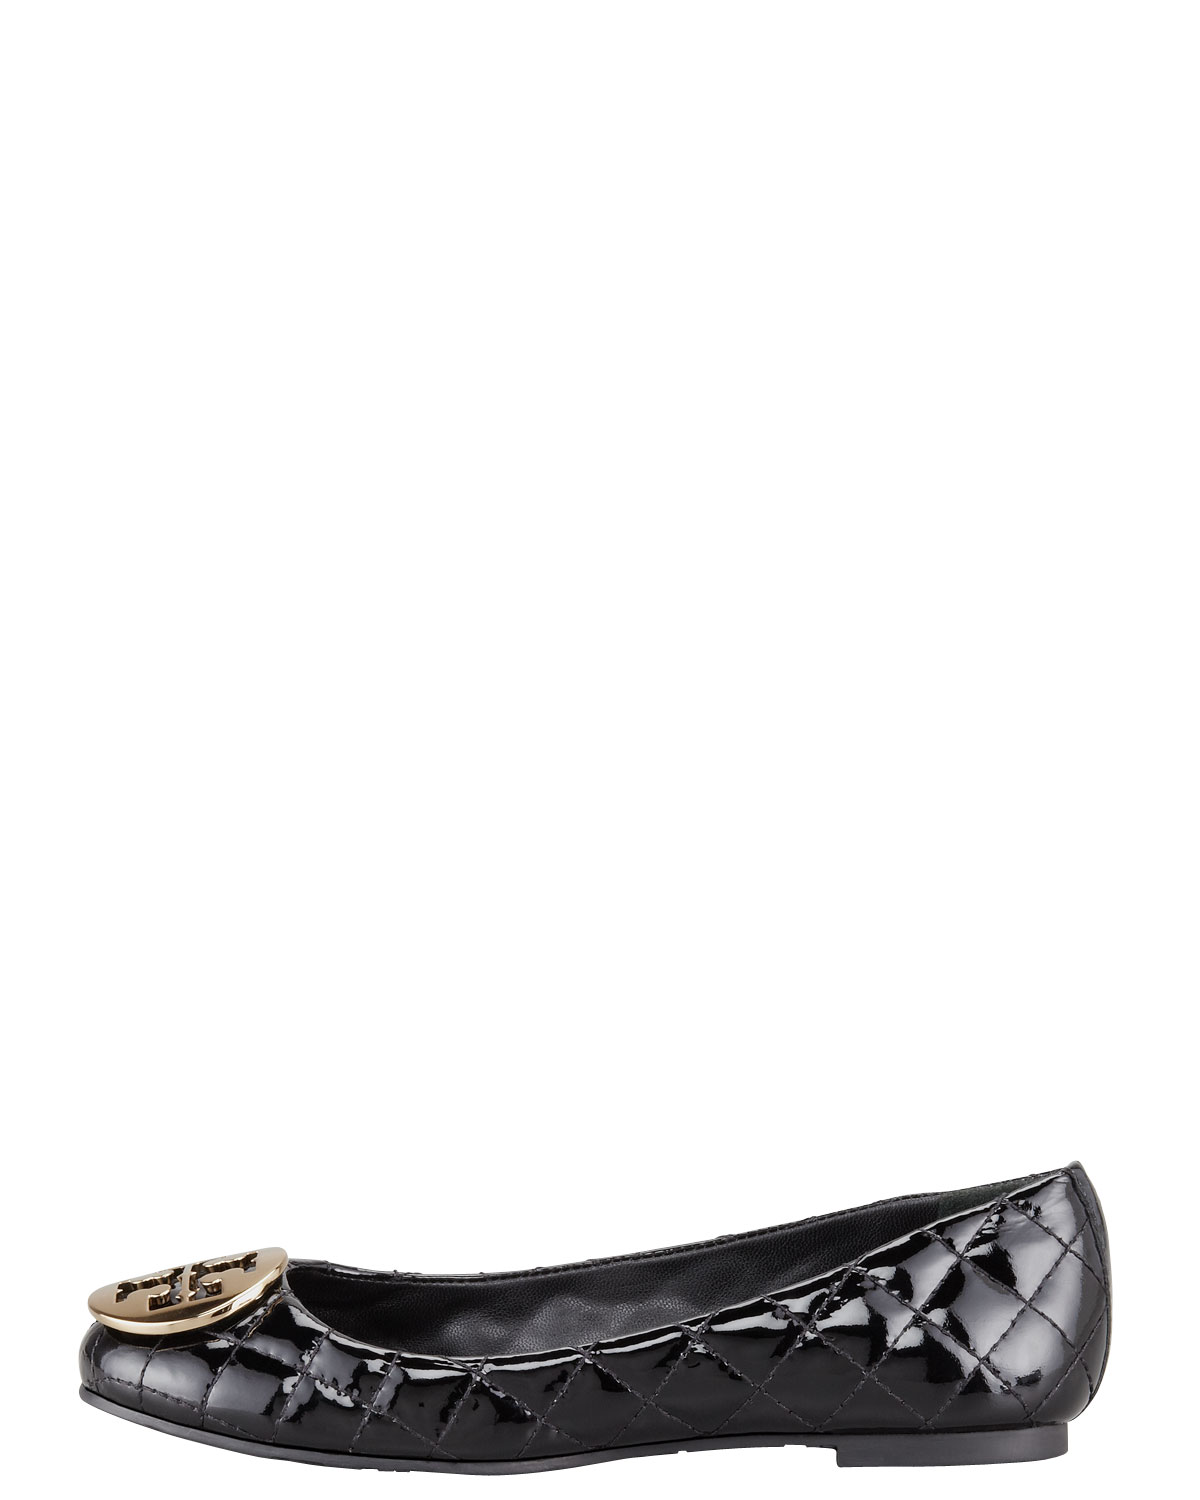 Tory Burch Quinn Quilted Patent Ballerina Flat In Black Lyst